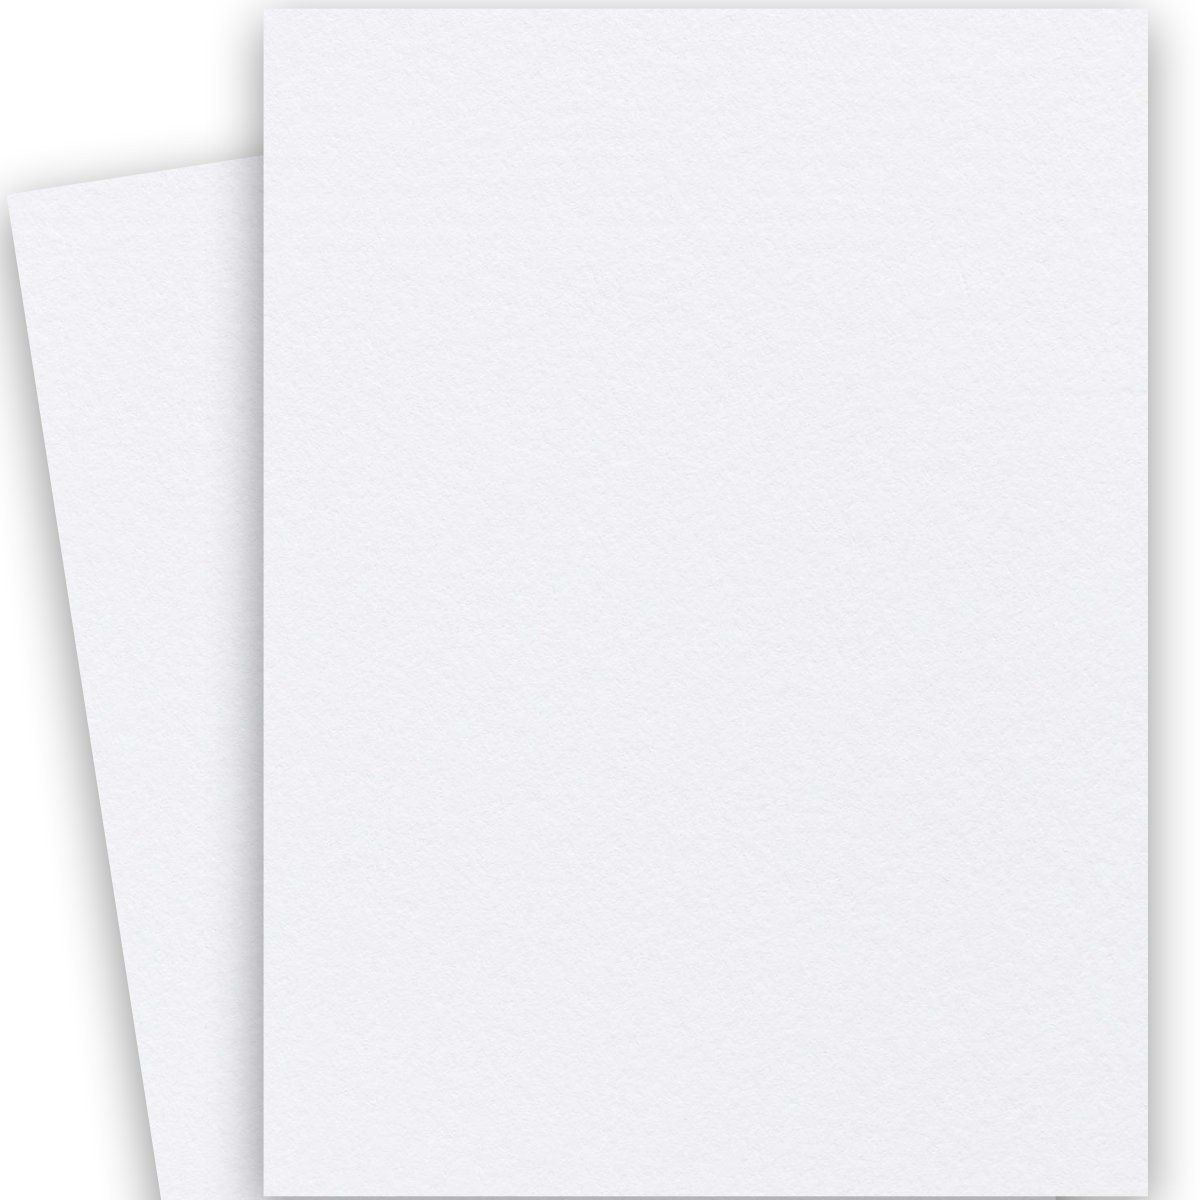 Lettra Cotton Fluorescent White 26x20 Full Size Paper 220lb Cover 595gsm 50 Pk In 2020 Letterpress Paper Paper Neenah